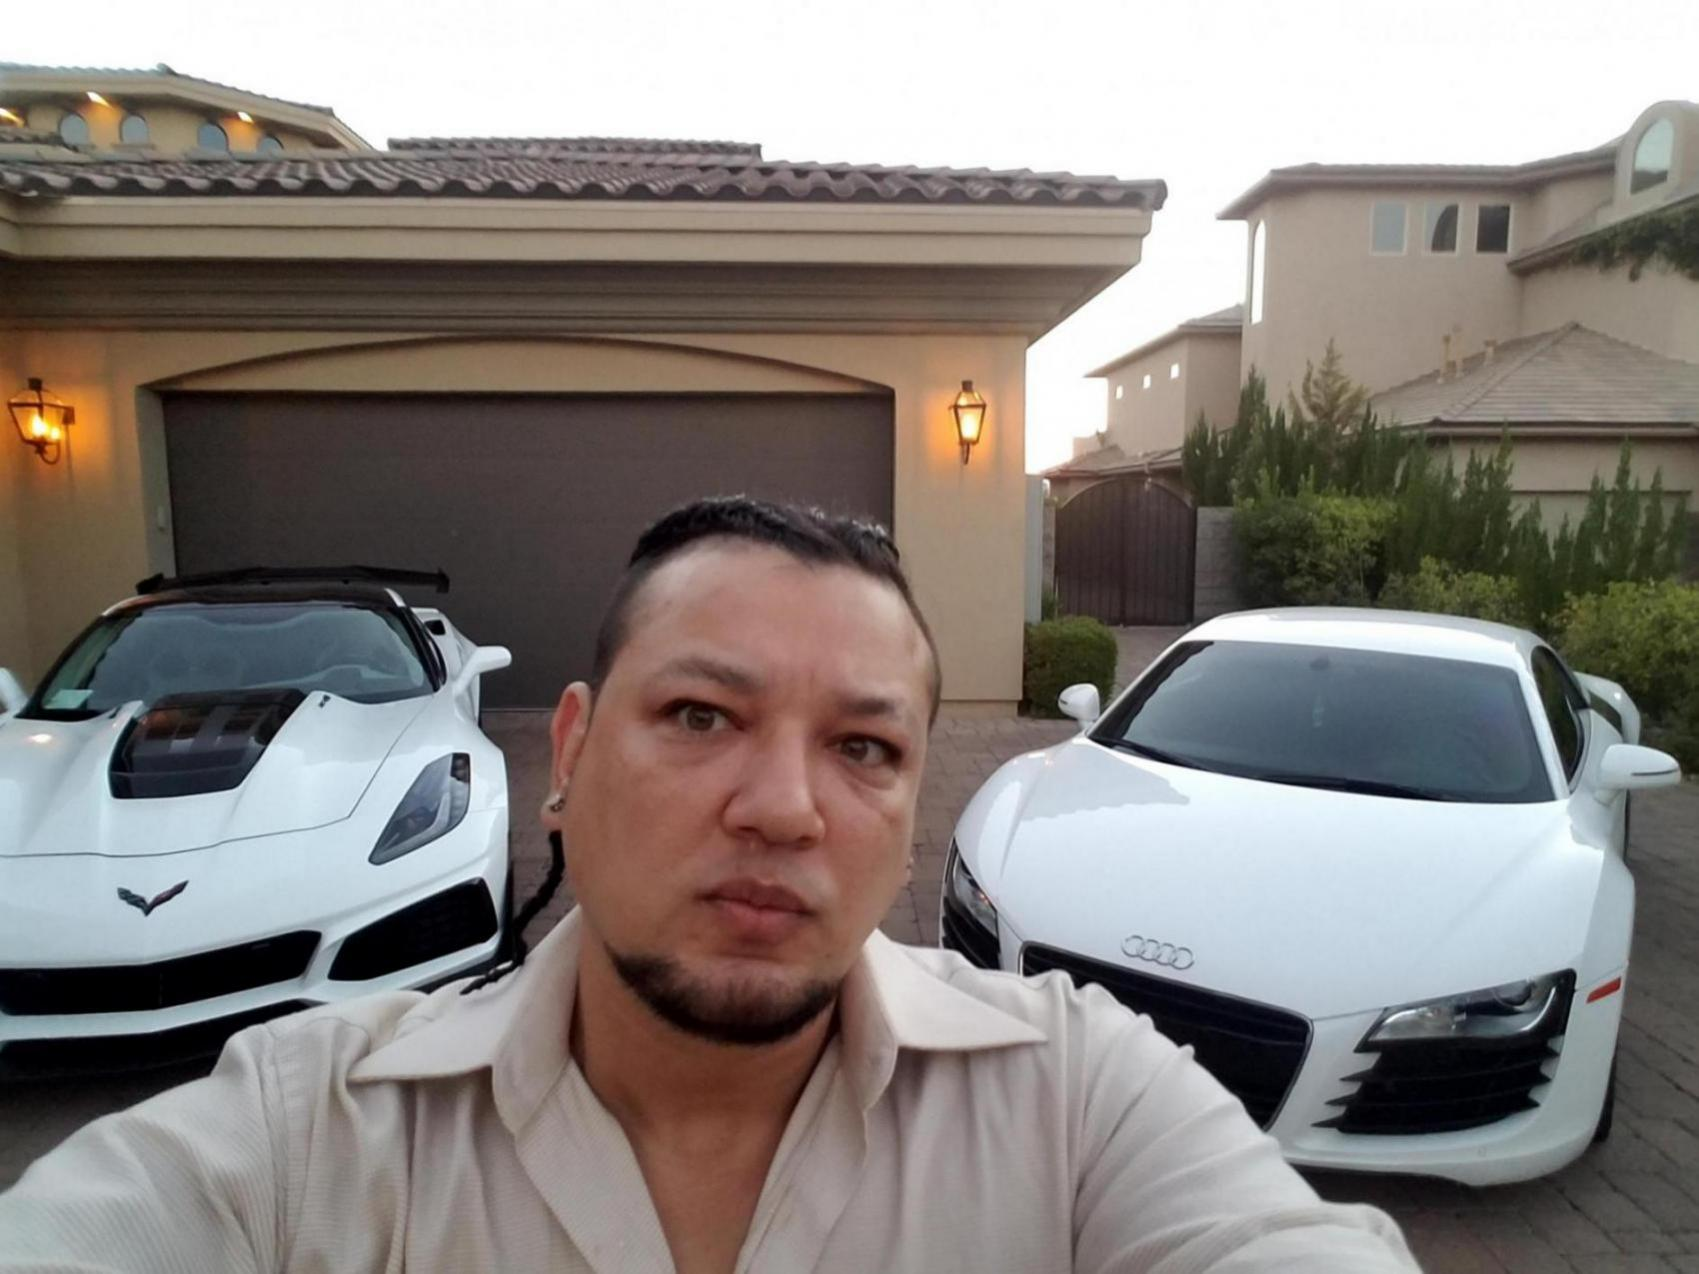 Owners photo with their R8.-20180929_182928_1560930896096.jpg